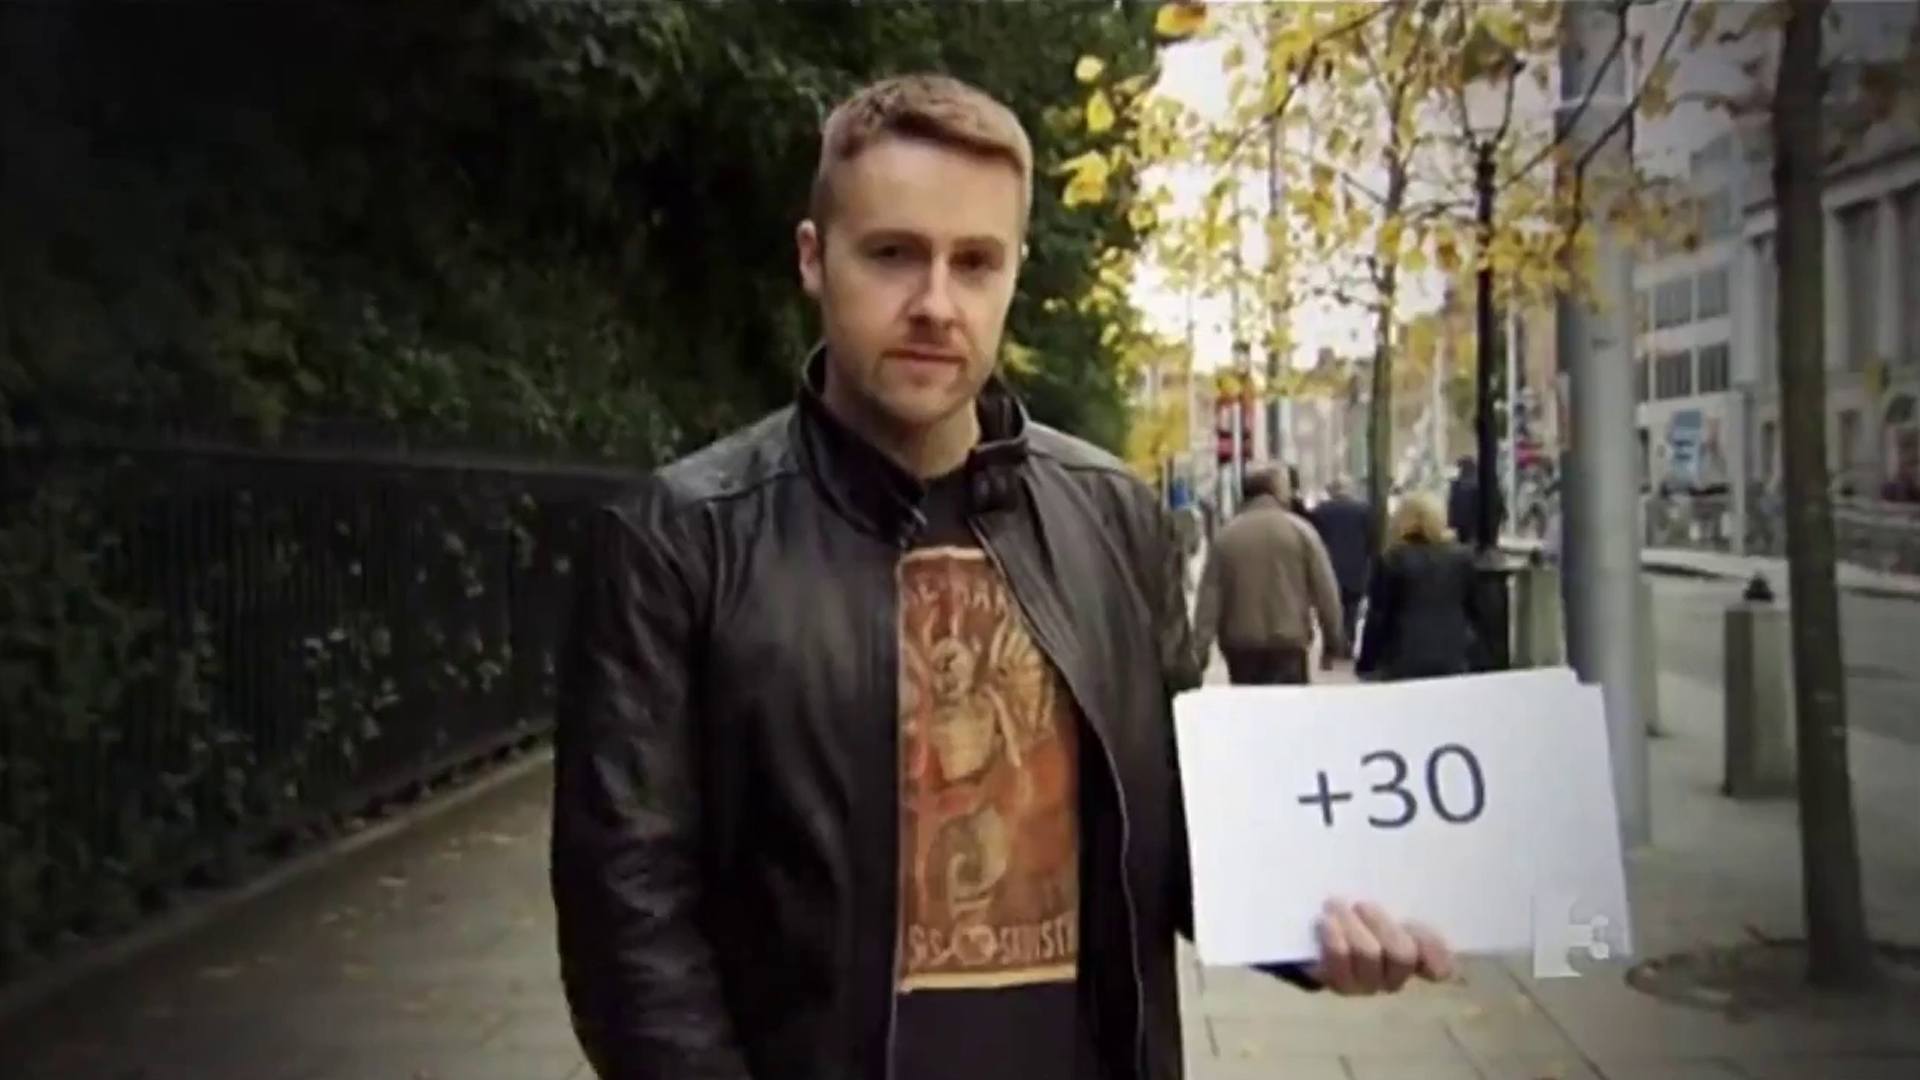 keith barry deception dating and daring bakers